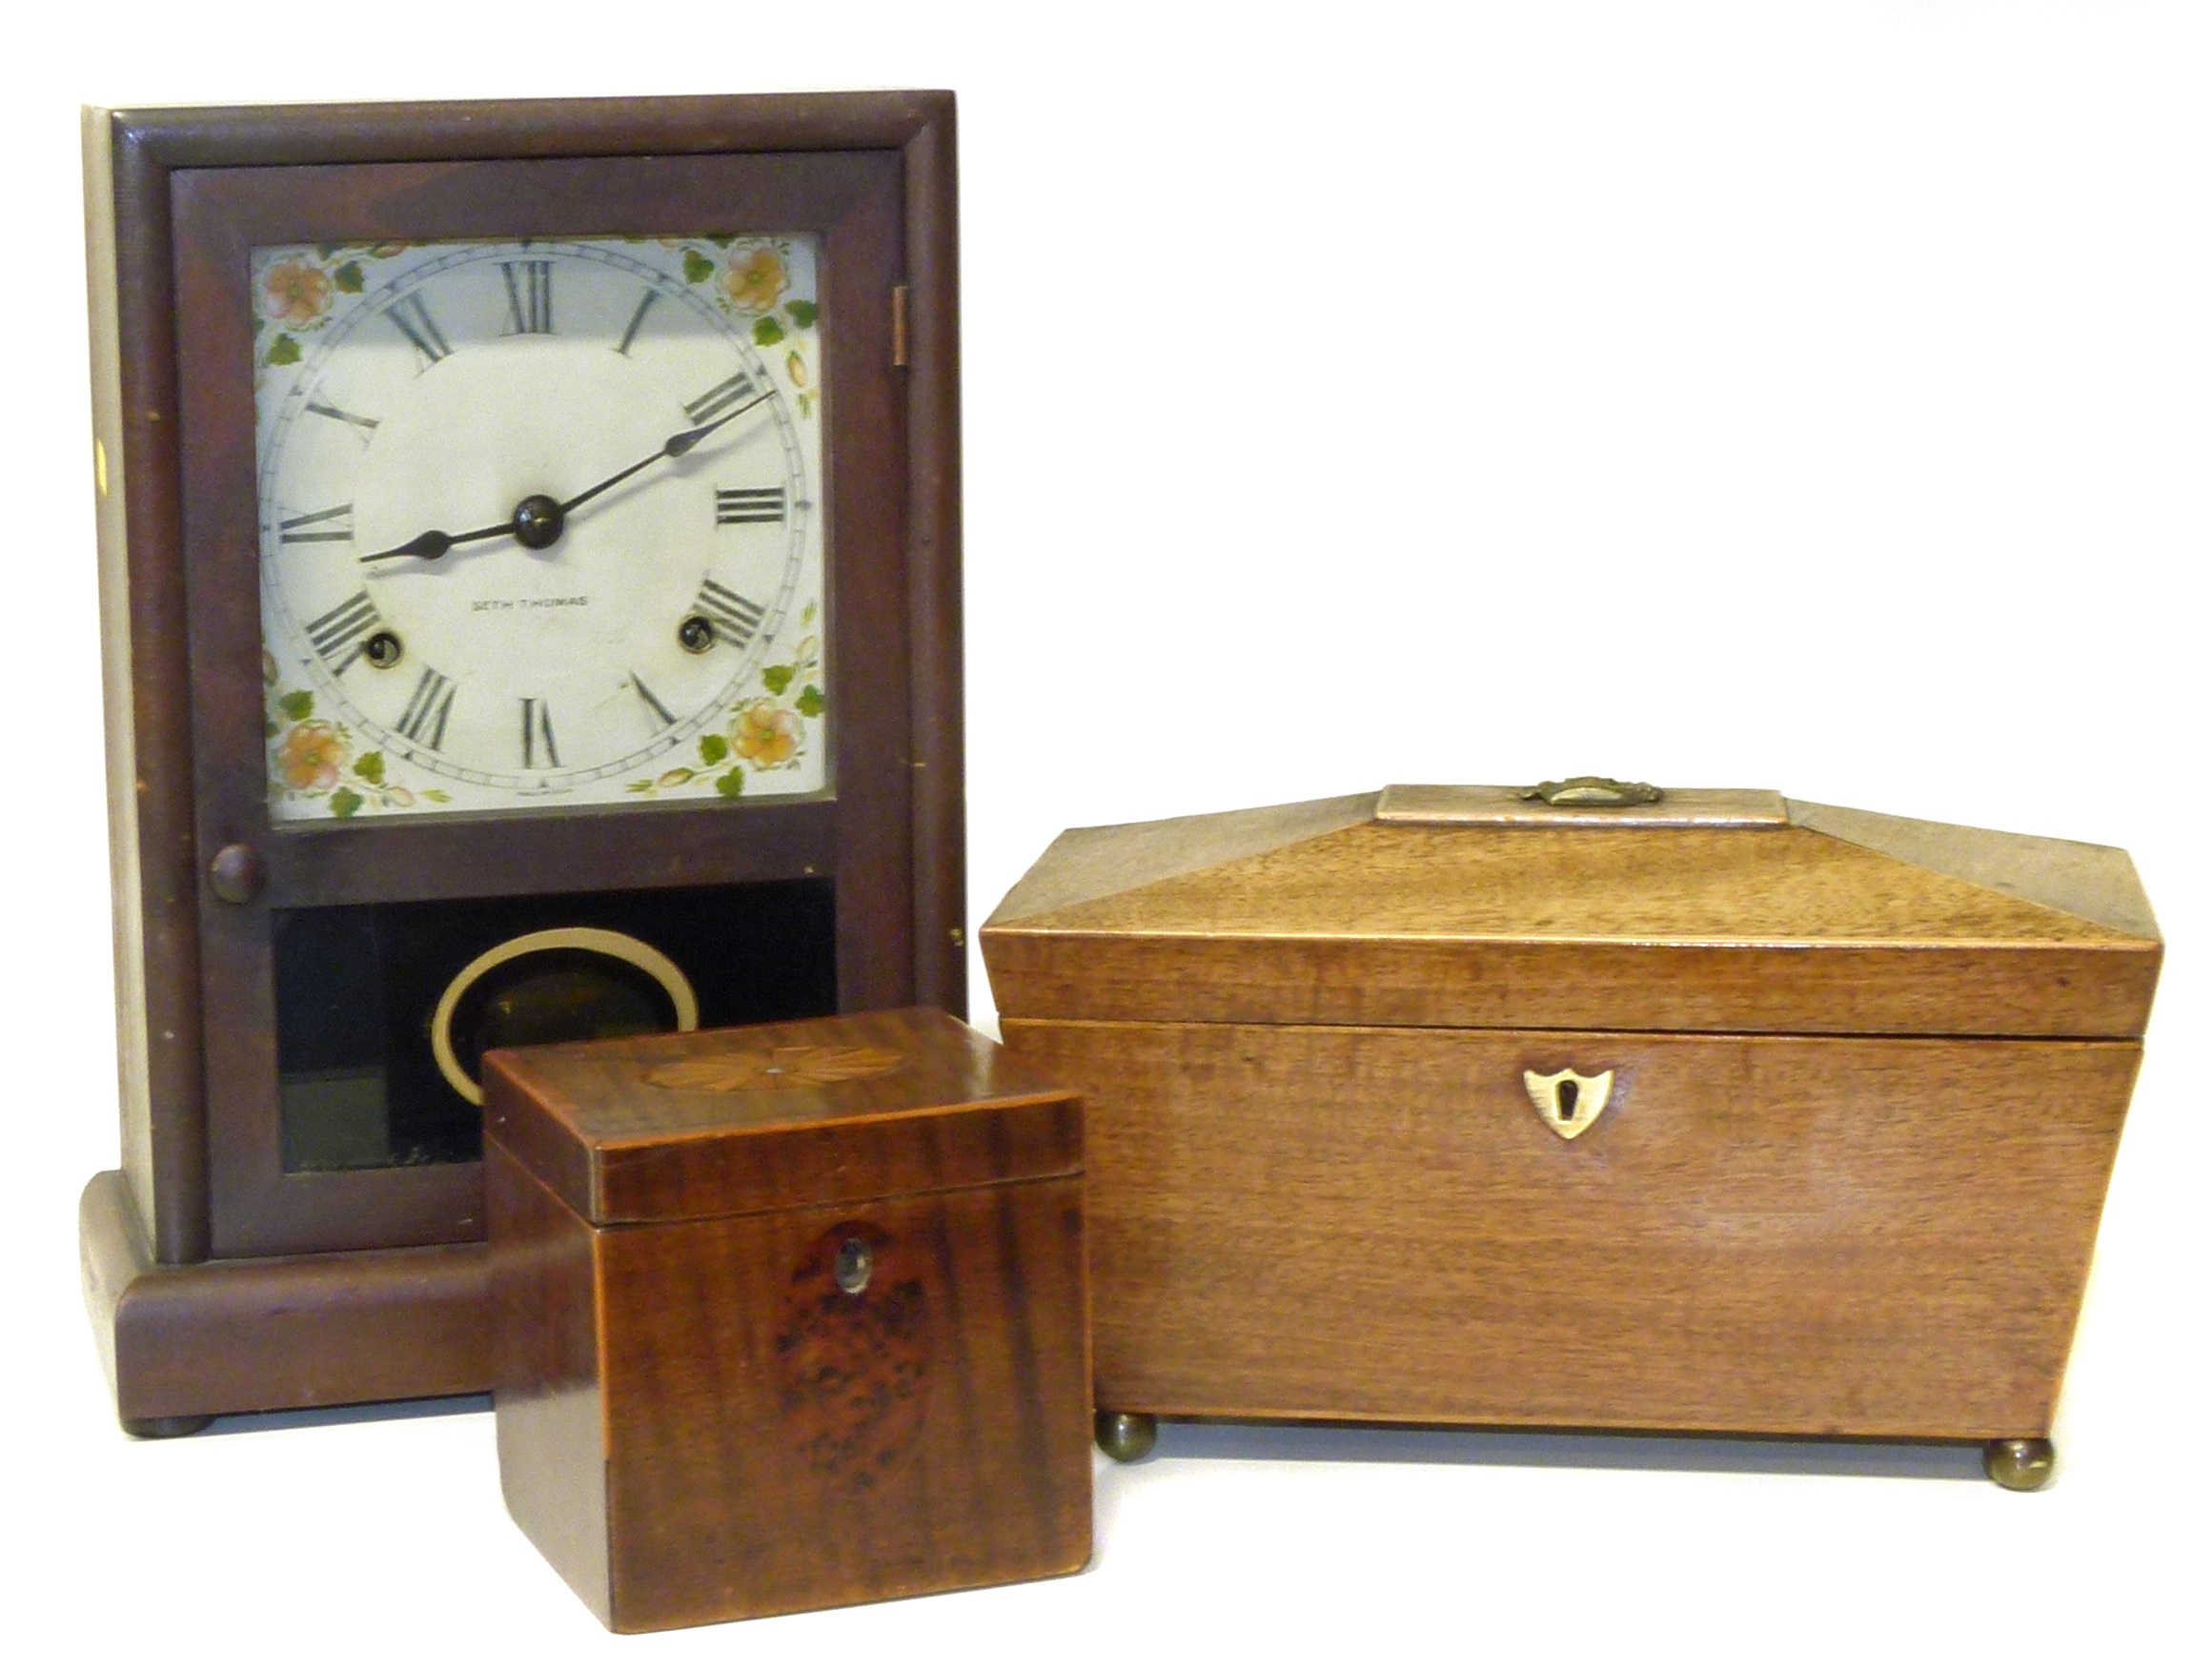 Lot 58 - Seth Thomson American style mantle clock 19th century sarcophagus shaped caddy and small square